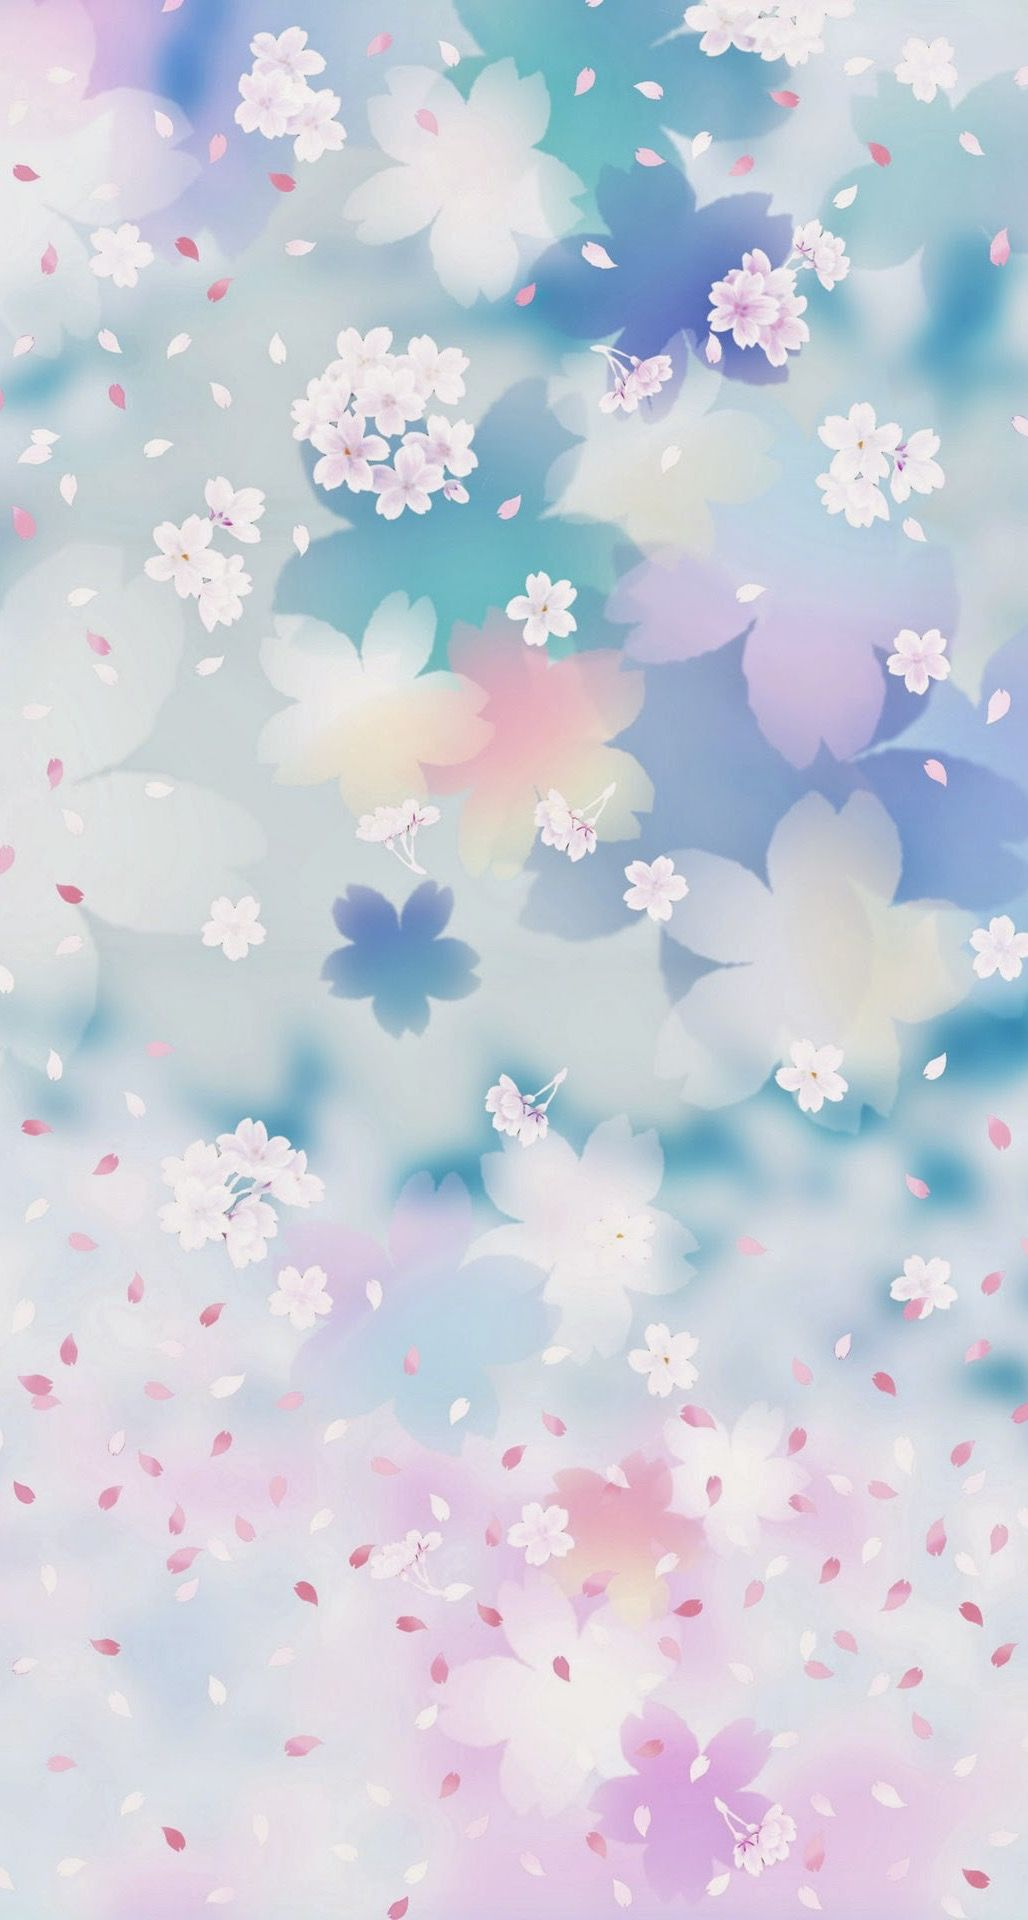 Pin By Celia Lau On Material Pretty Wallpapers Scenery Wallpaper Anime Scenery Wallpaper